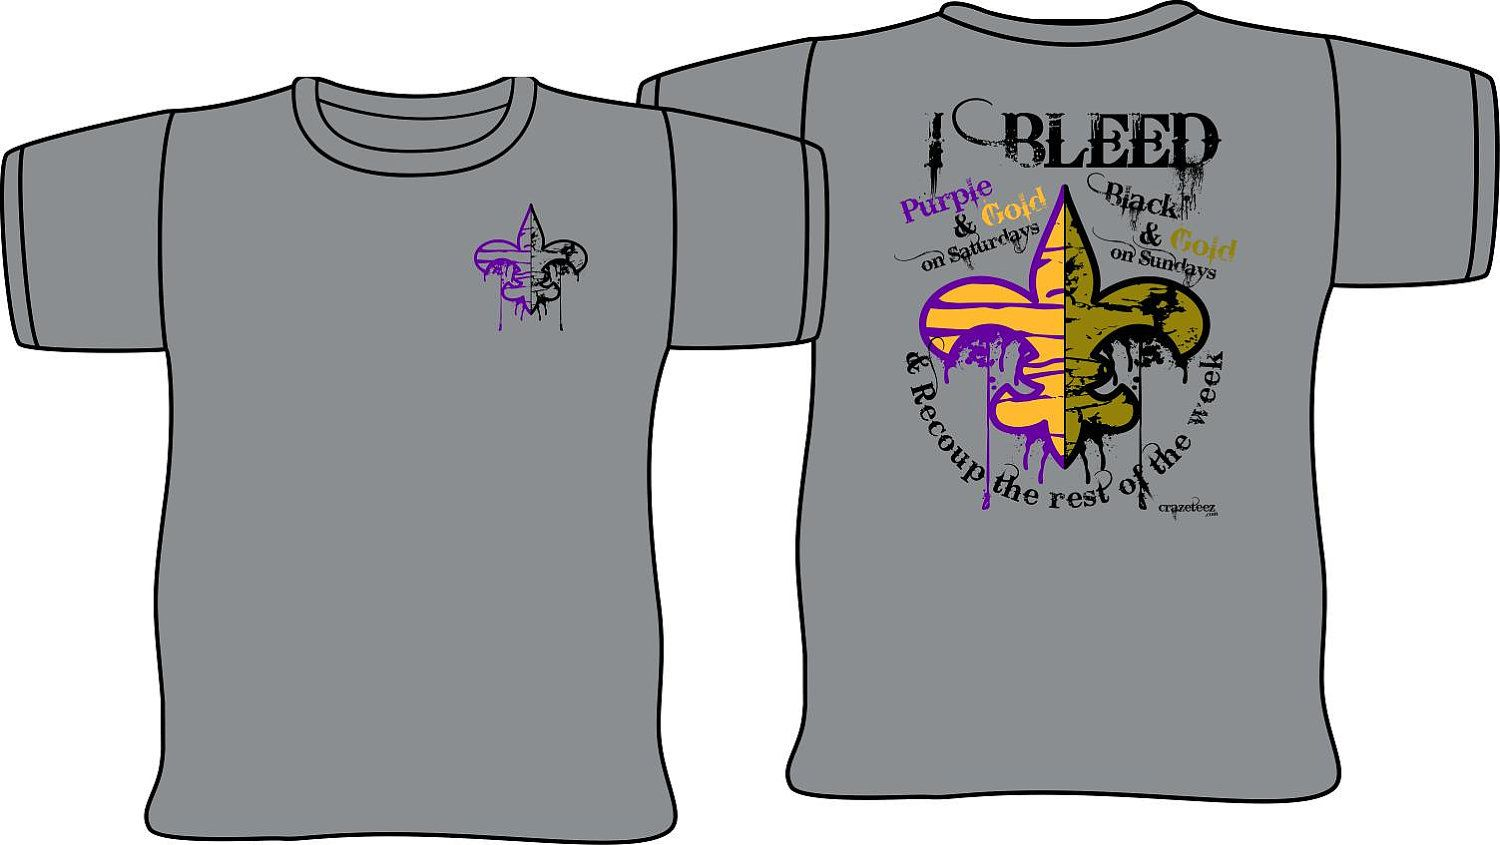 ef877e3cefb8 I Bleed Purple Black & Gold LSU Saints Shirt | Geaux Tigers & Who ...